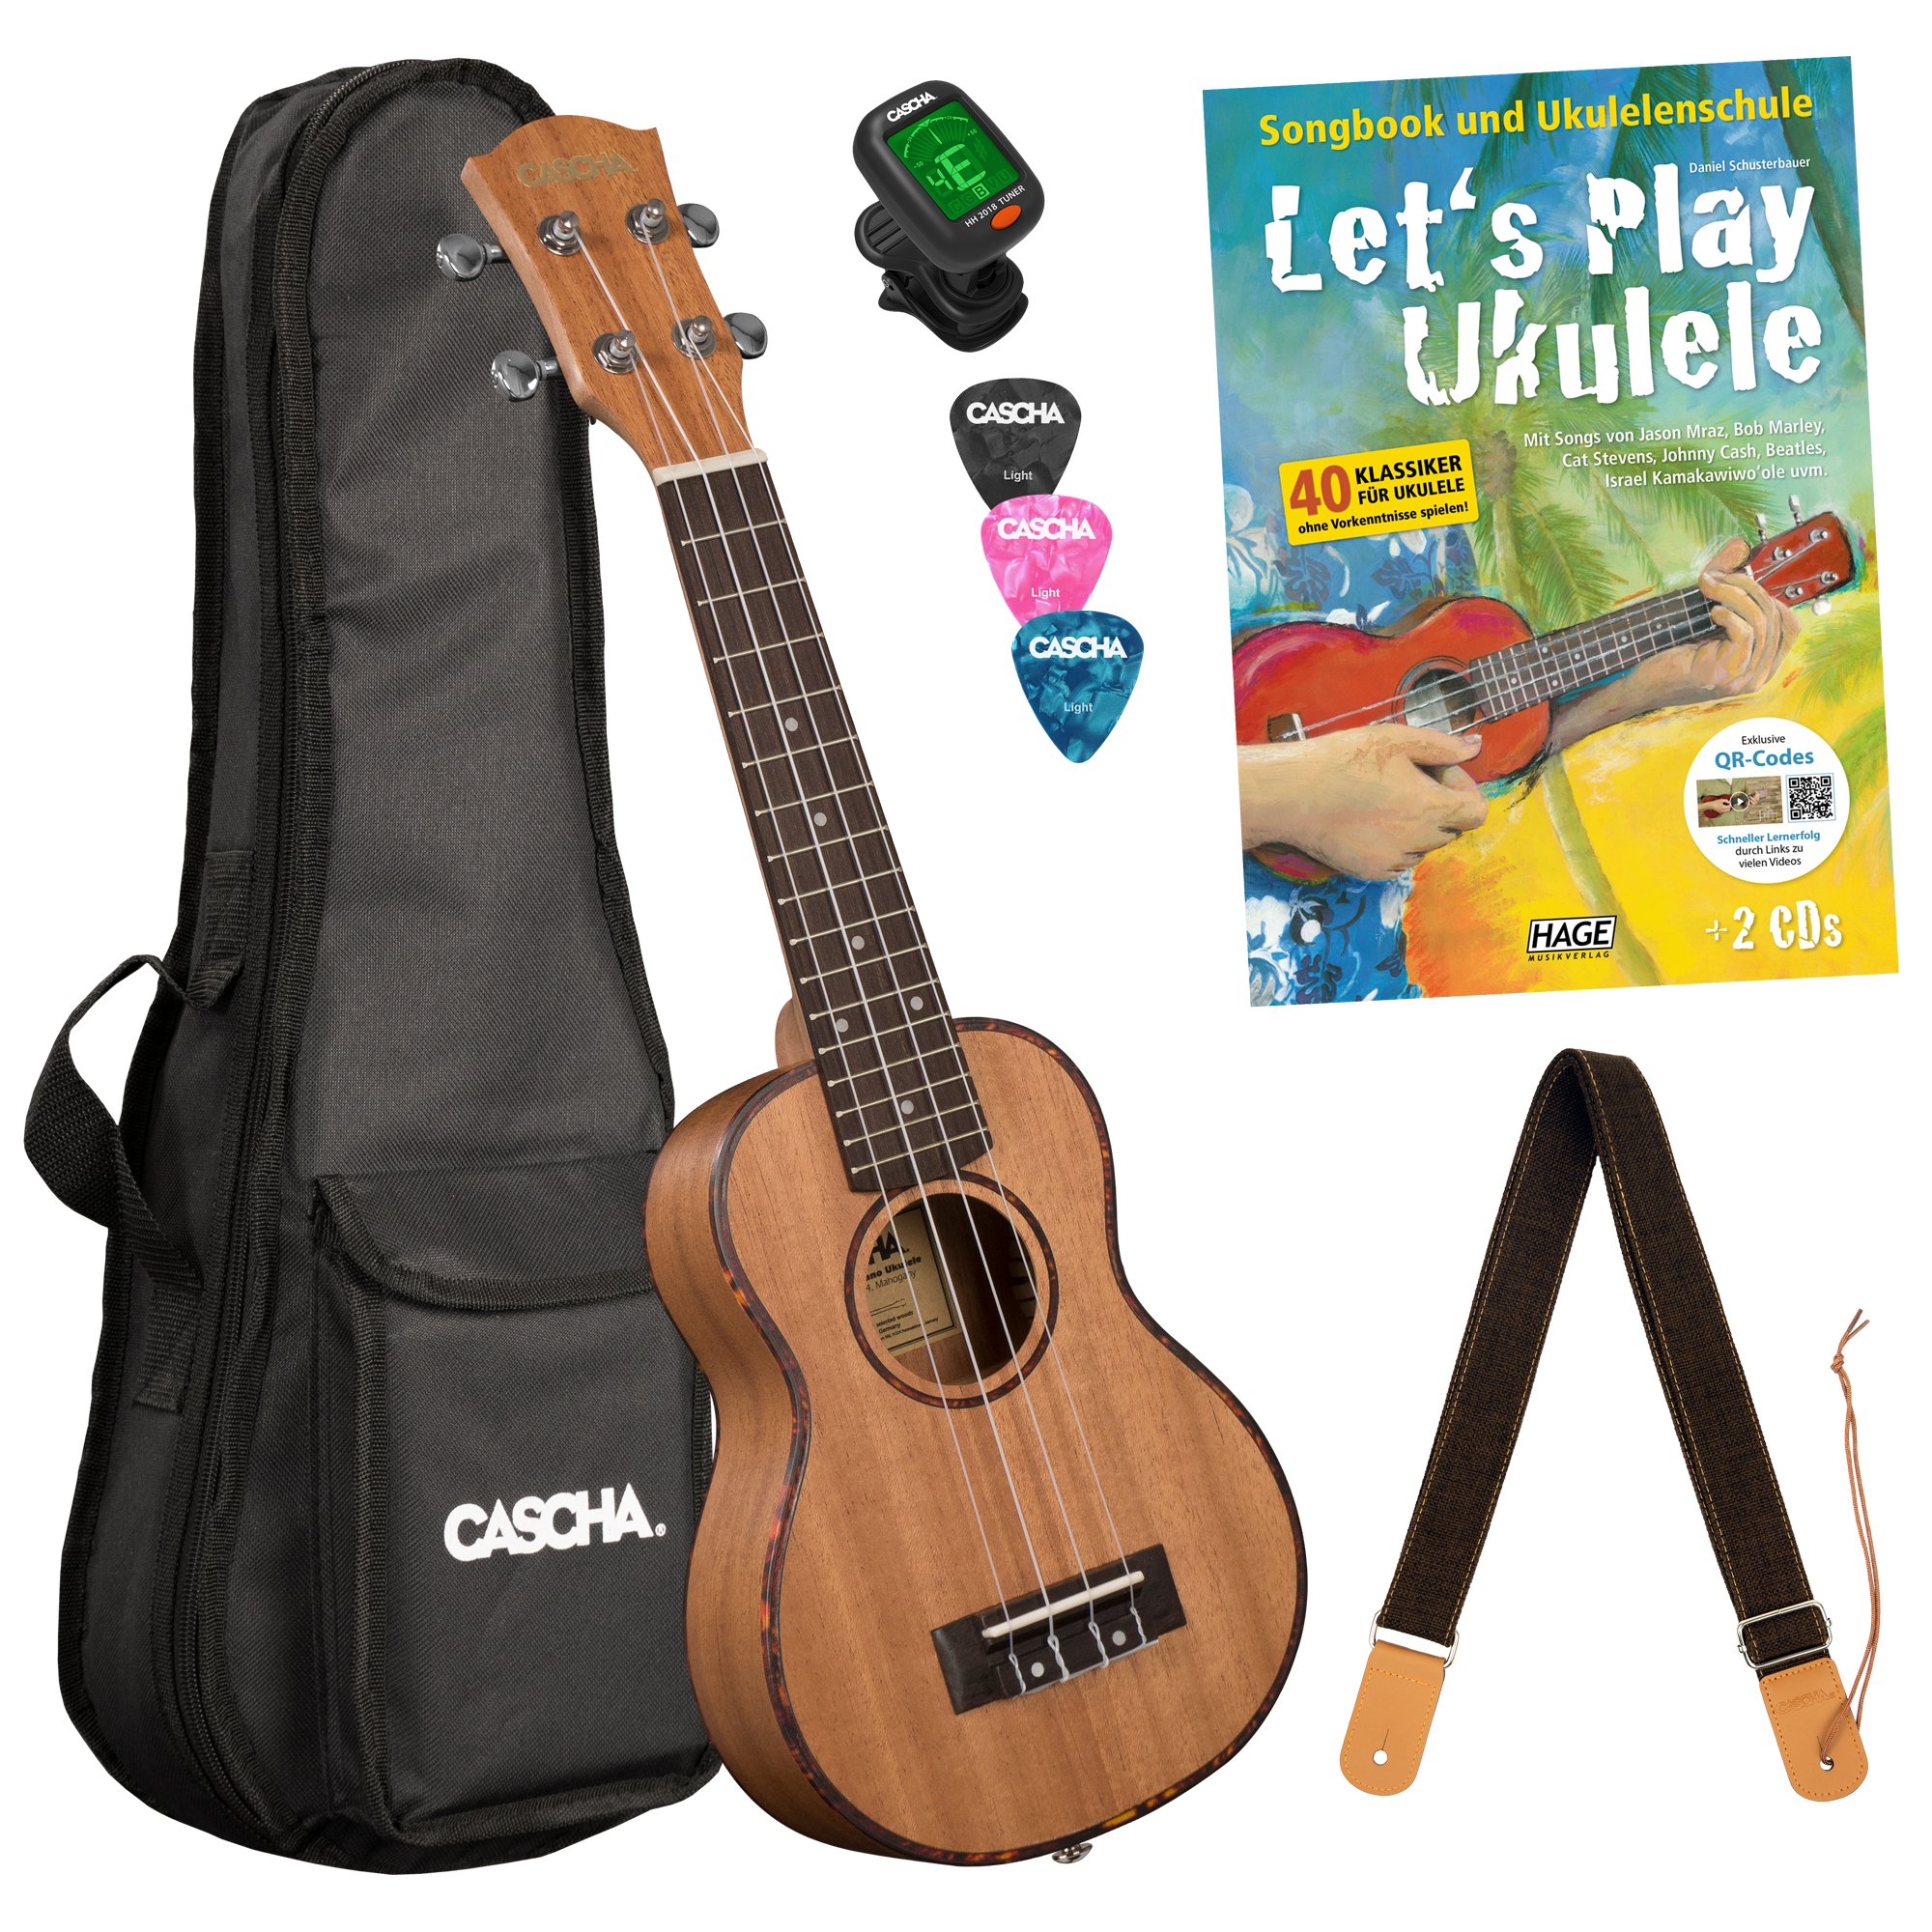 Let's Play Ukulele Einsteiger Set Sopran